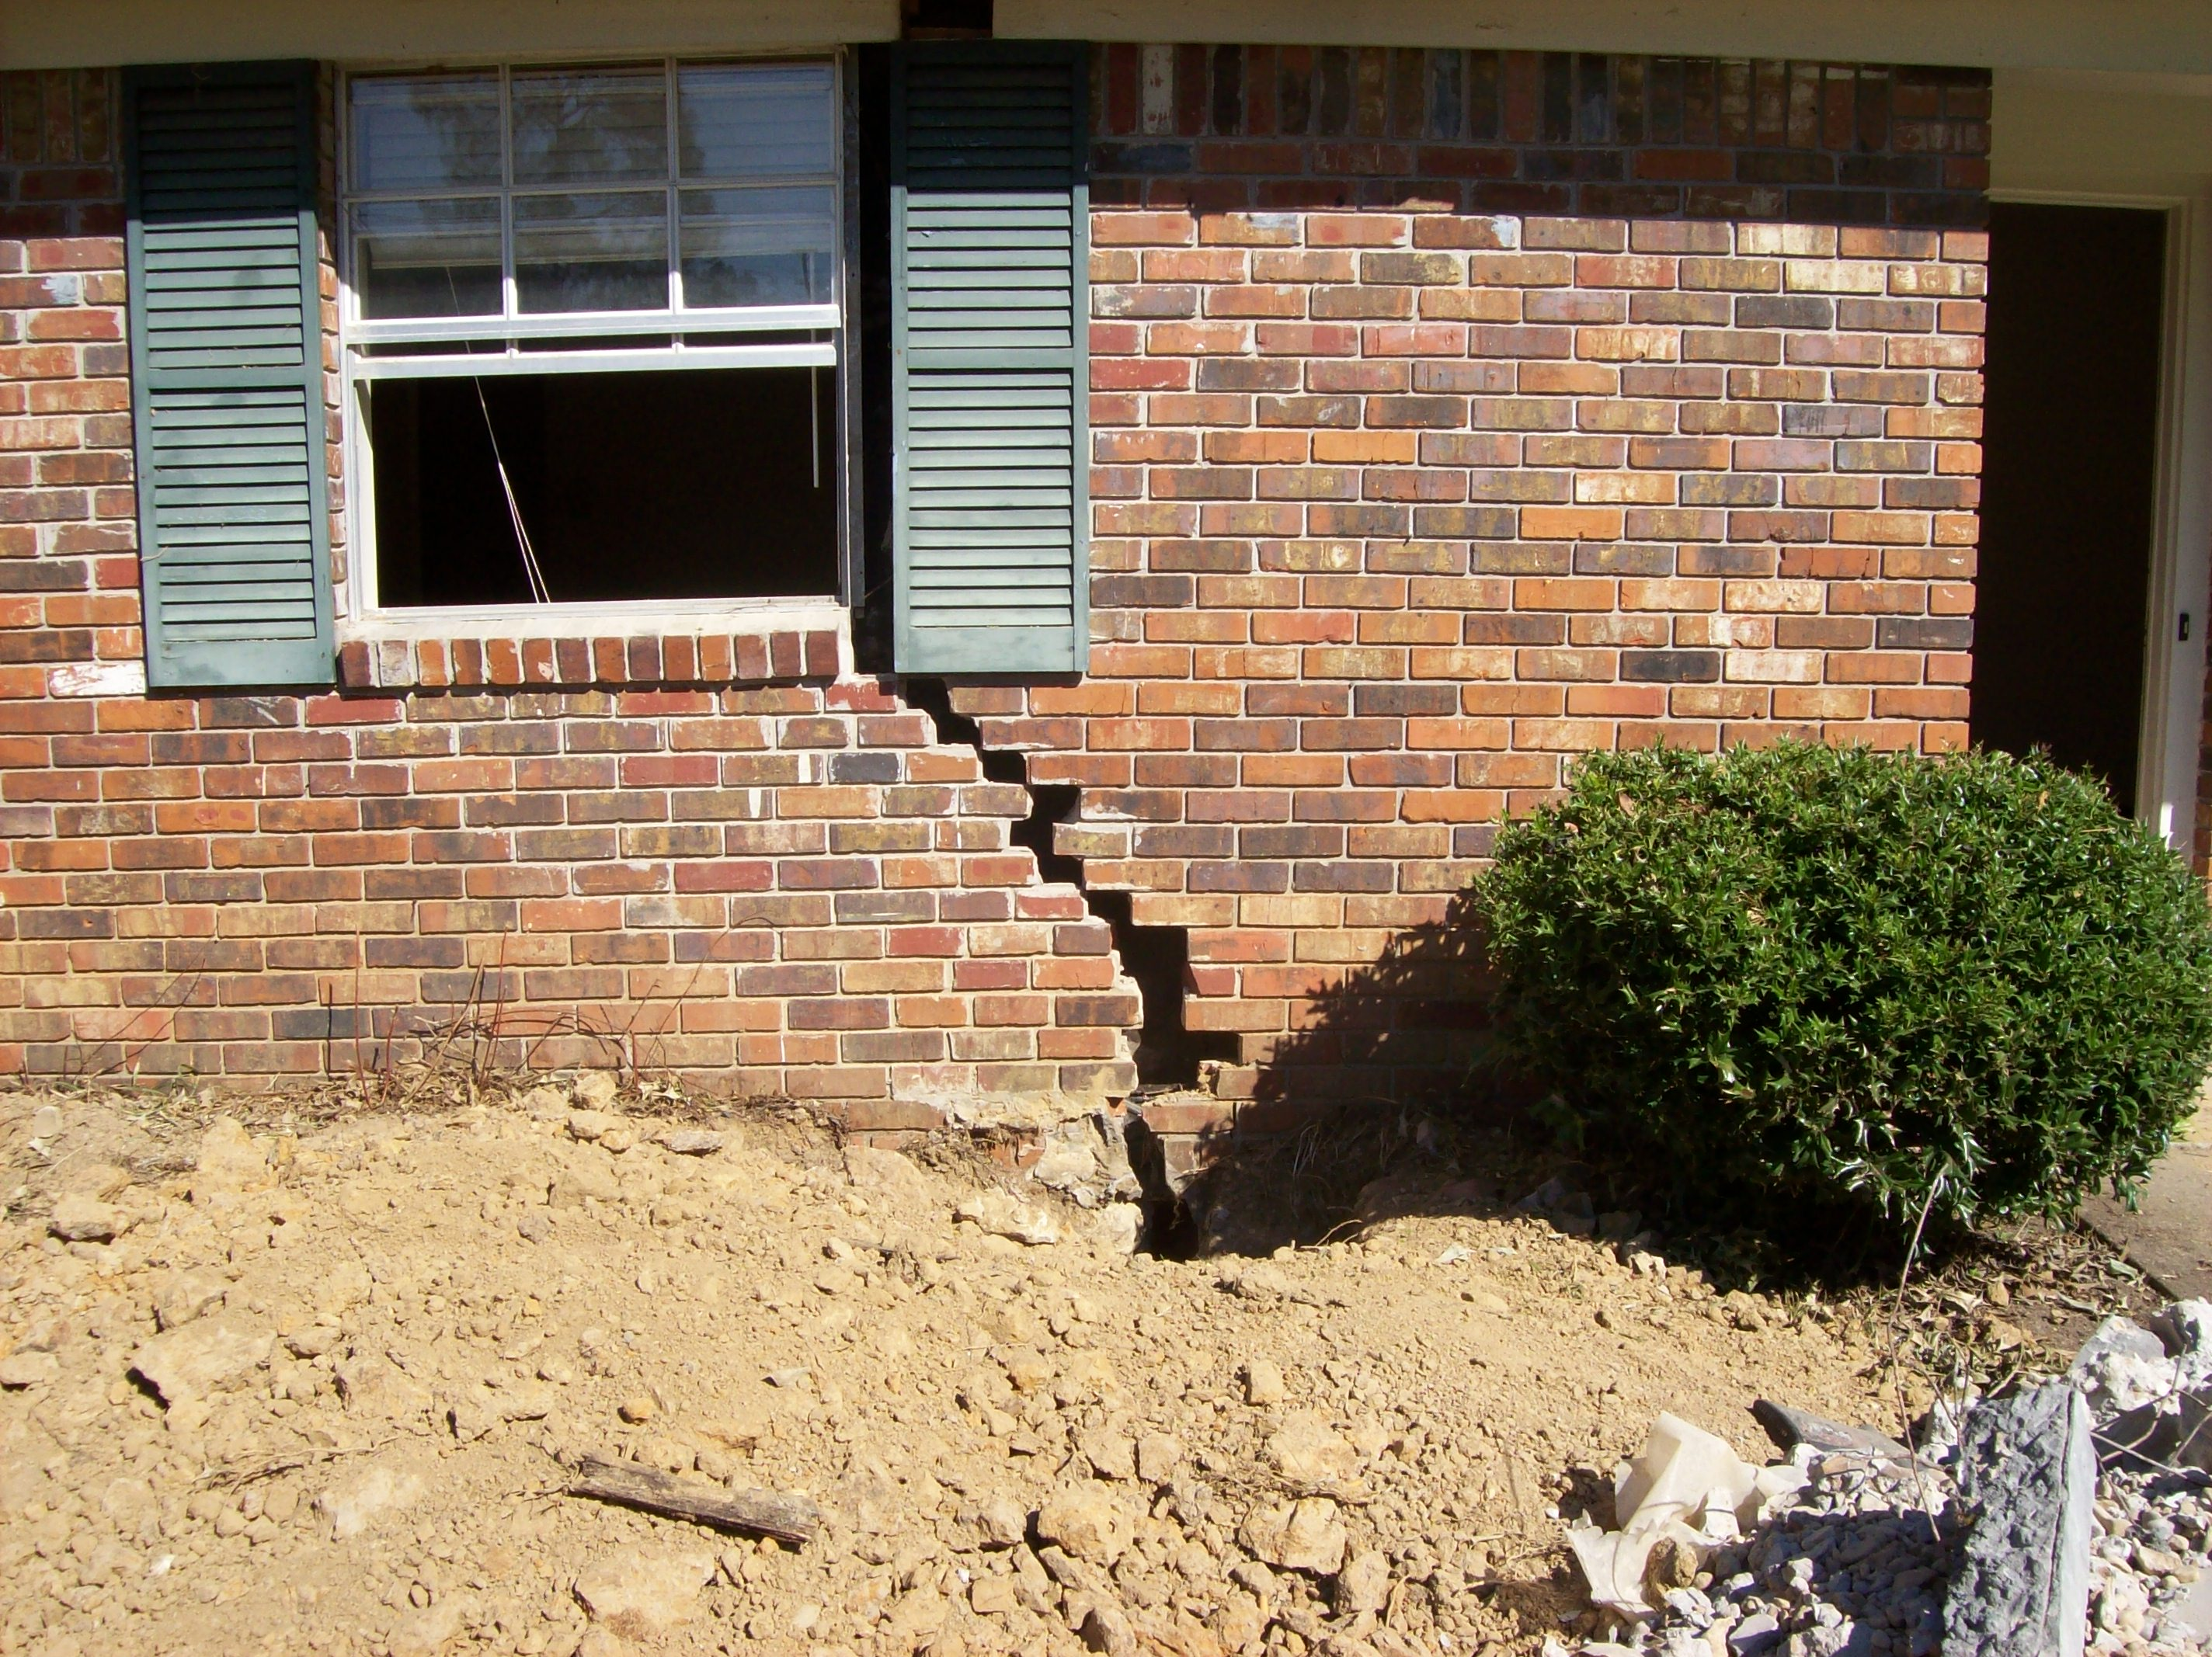 Sell house with subsidence issues